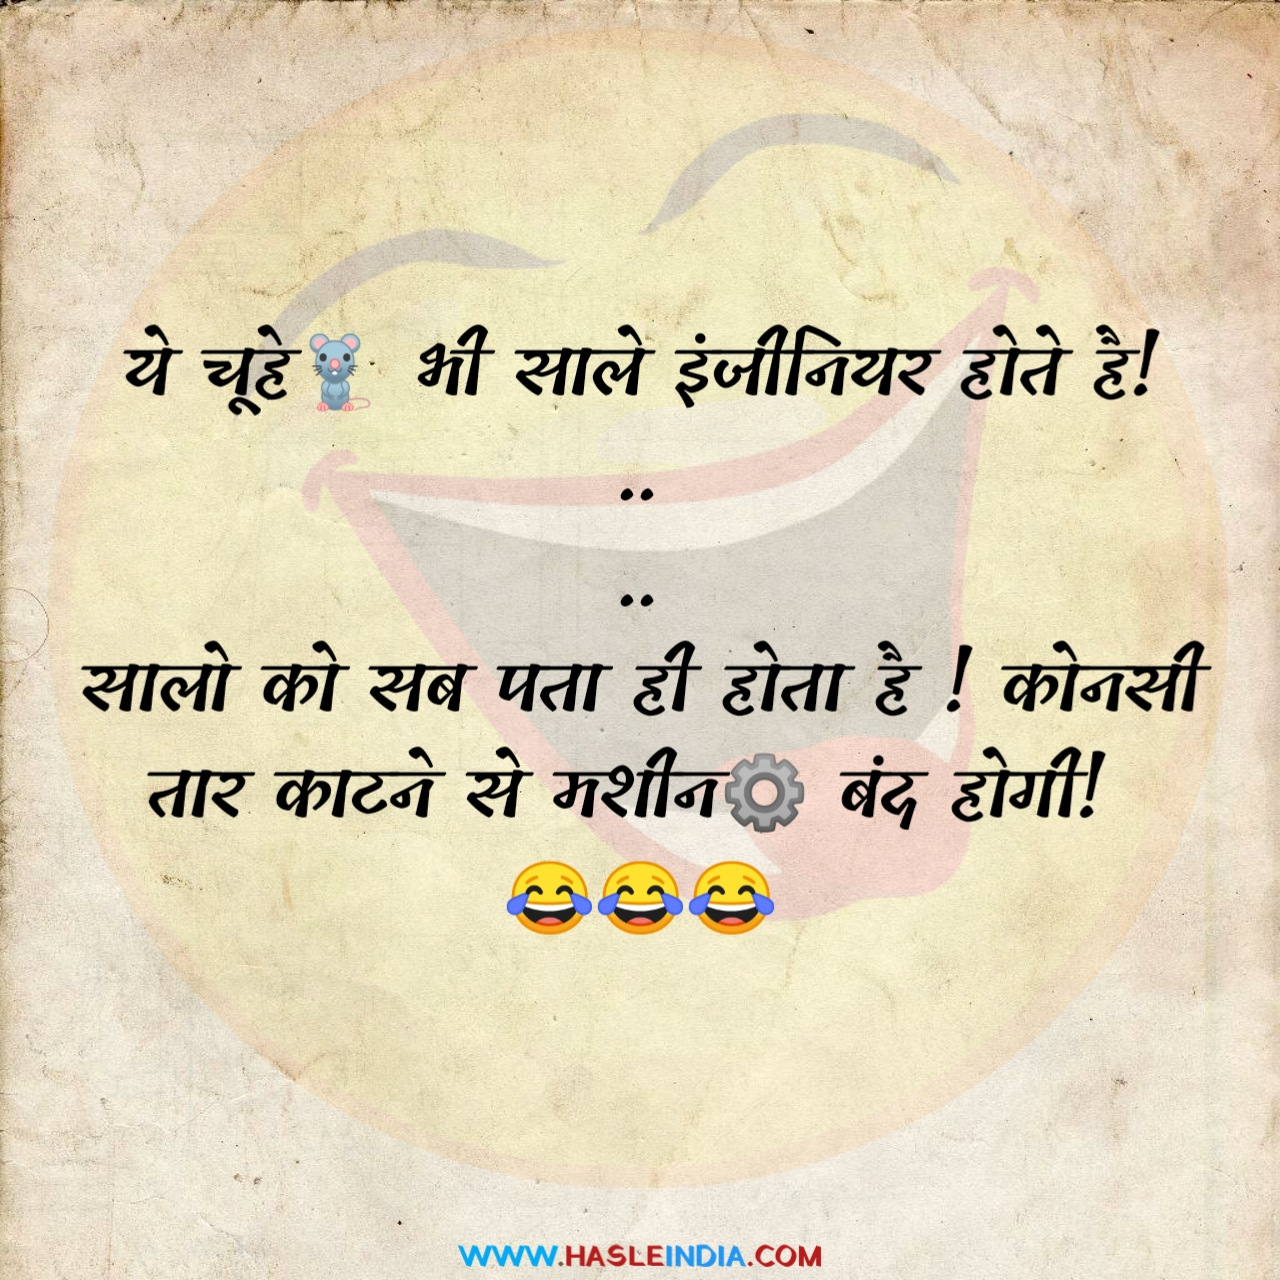 engineering jokes hindi, engineering jokes, computer engineering jokes, jokes on engineer, engineer jokes, jokes in hindi, funny hindi jokes, Hindi jokes, hindi chutkule, hindi joke sms, hindi jokes pic, hindi jokes images, Hasle india,